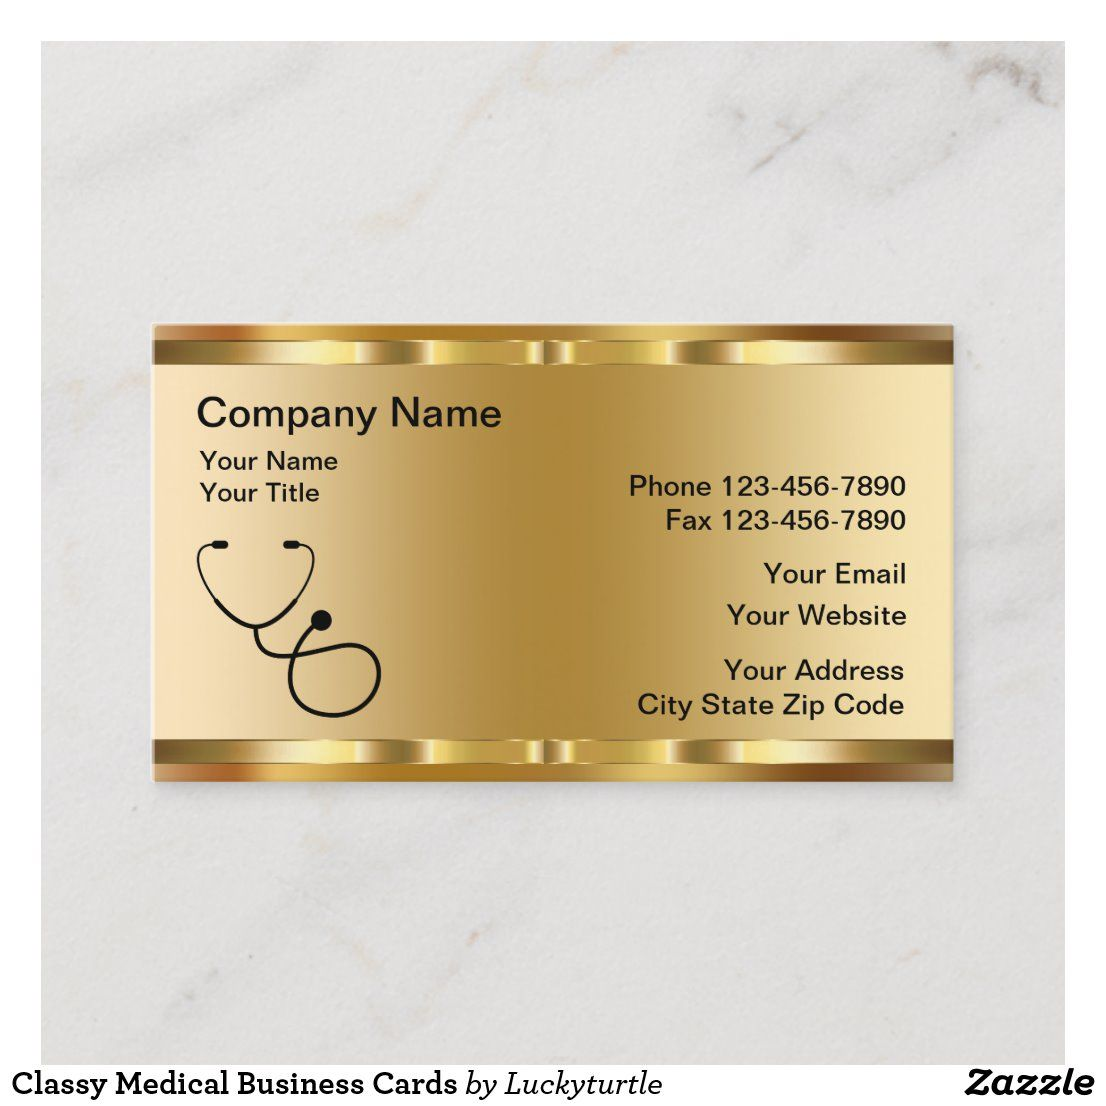 Classy medical business cards in 2020 medical business